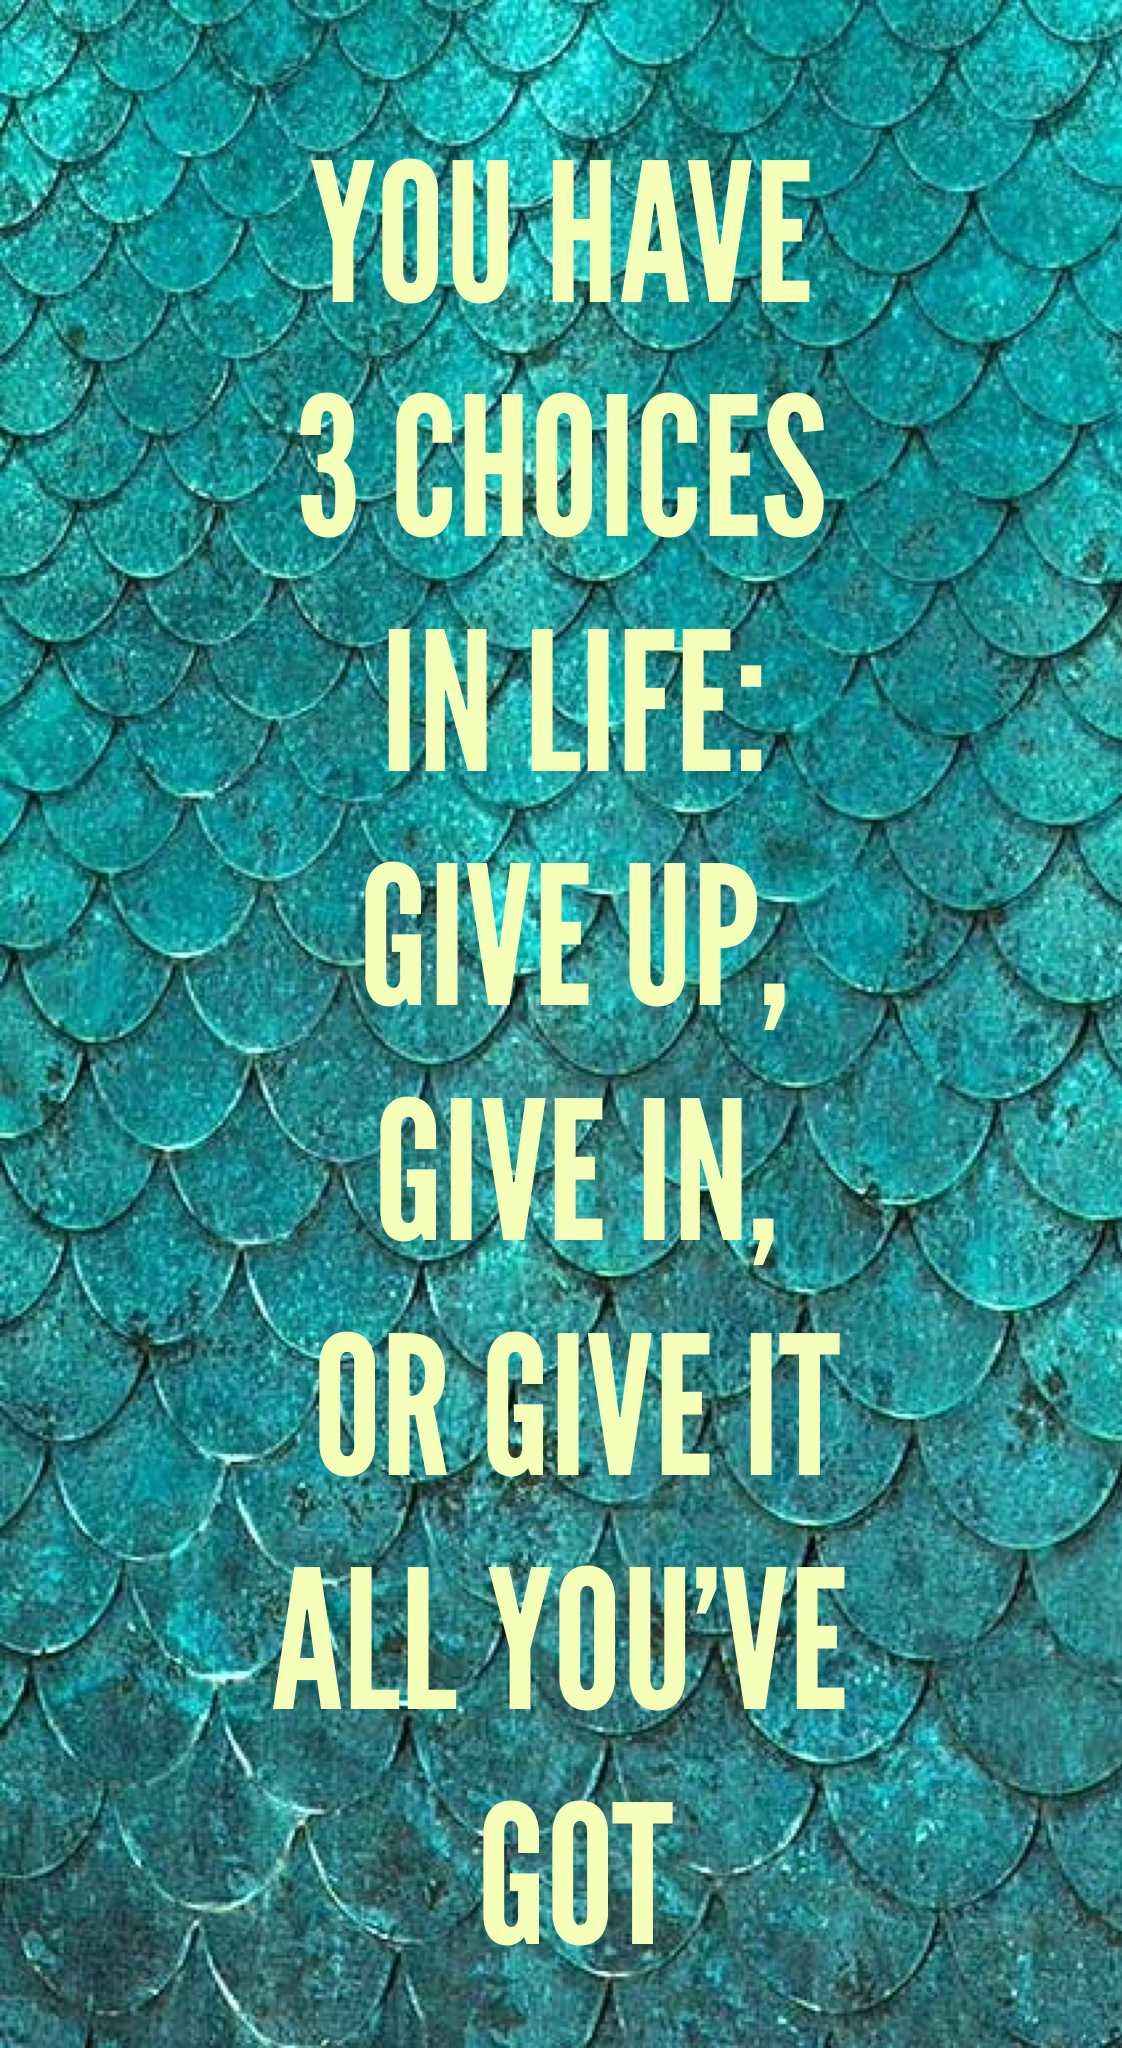 Quotes About Strength You Have 3 Choices In Life Give Up Give In Or Give It All You